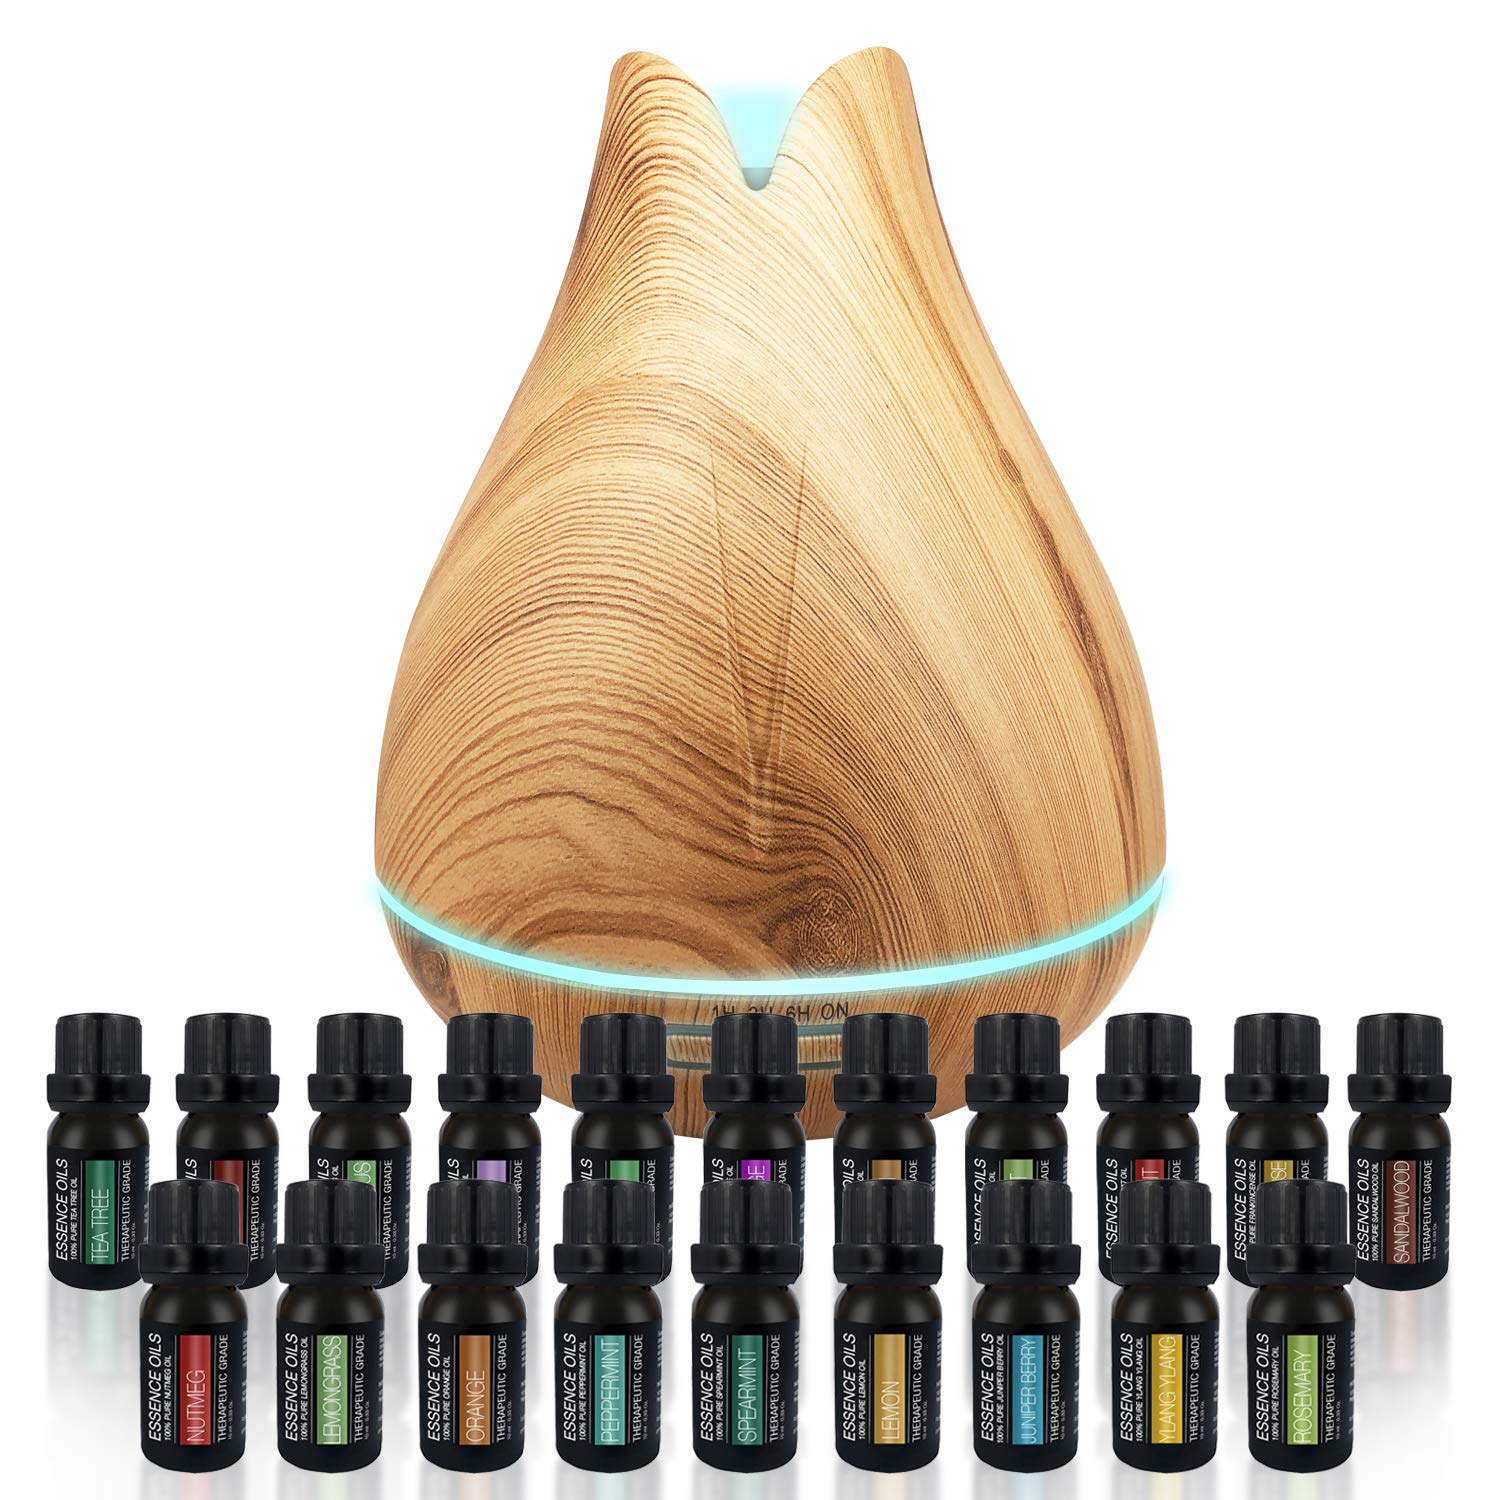 Aromatherapy Essential Oil Diffuser Gift Set - 400ml Ultrasonic Diffuser with 20 Essential Plant Oils